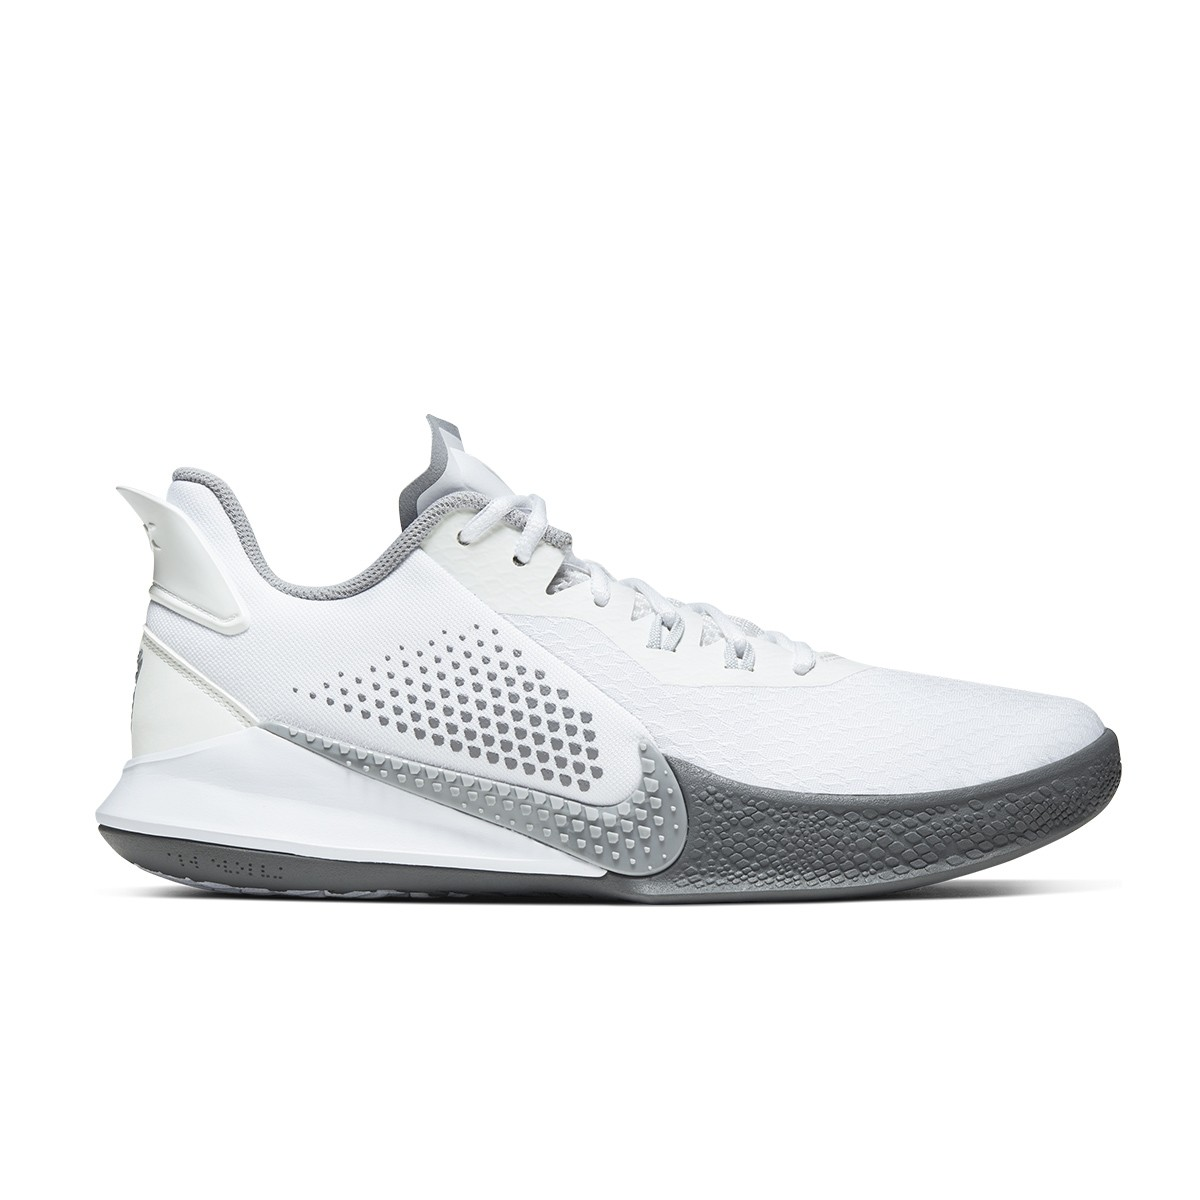 Nike Mamba Fury Jr 'White'